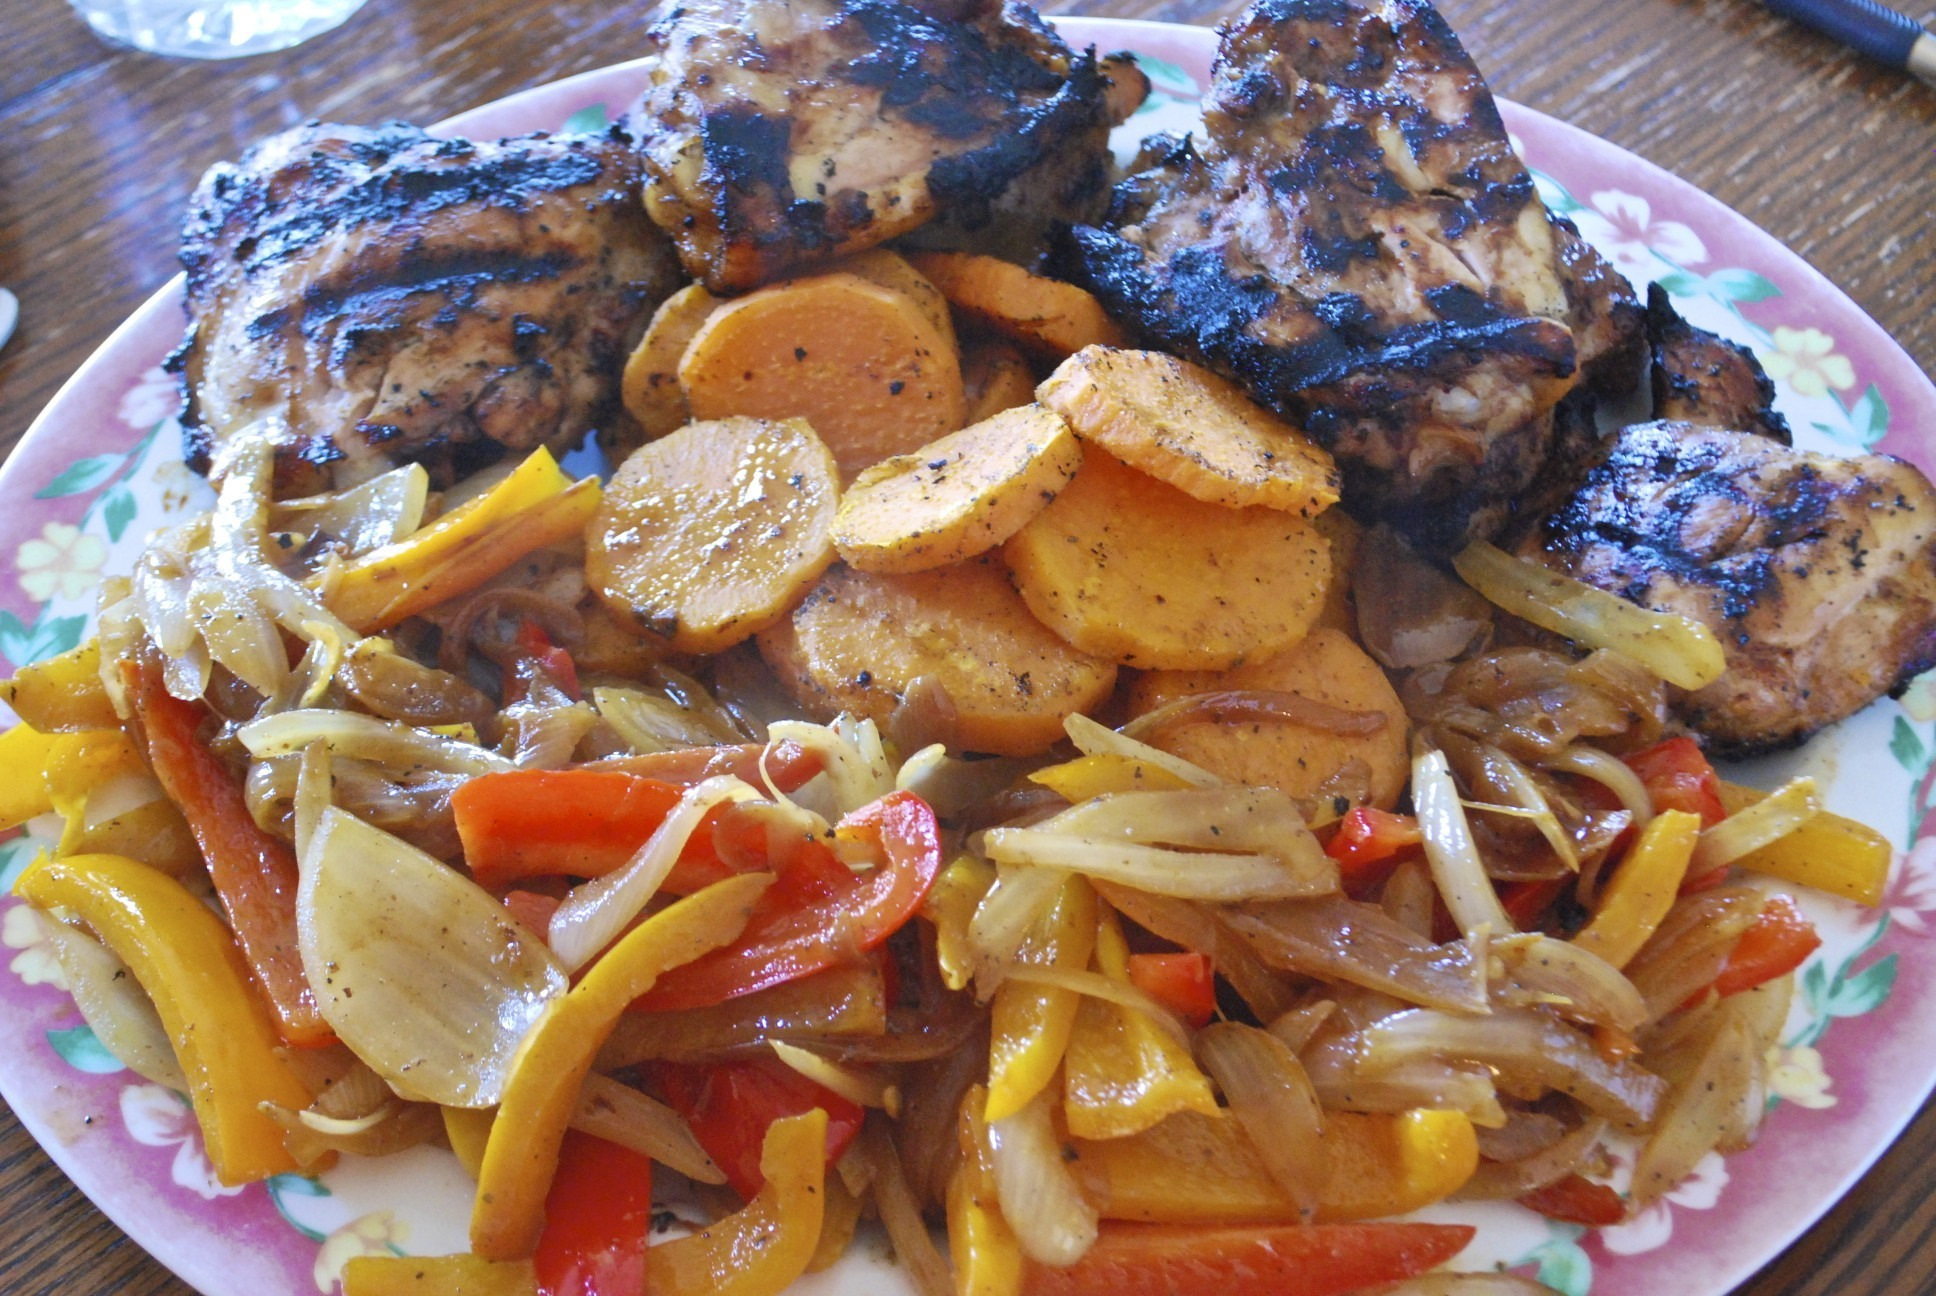 Grilled Marinated Chicken Thighs with Grilled Sweet Potato and Sauteed Peppers and Onions